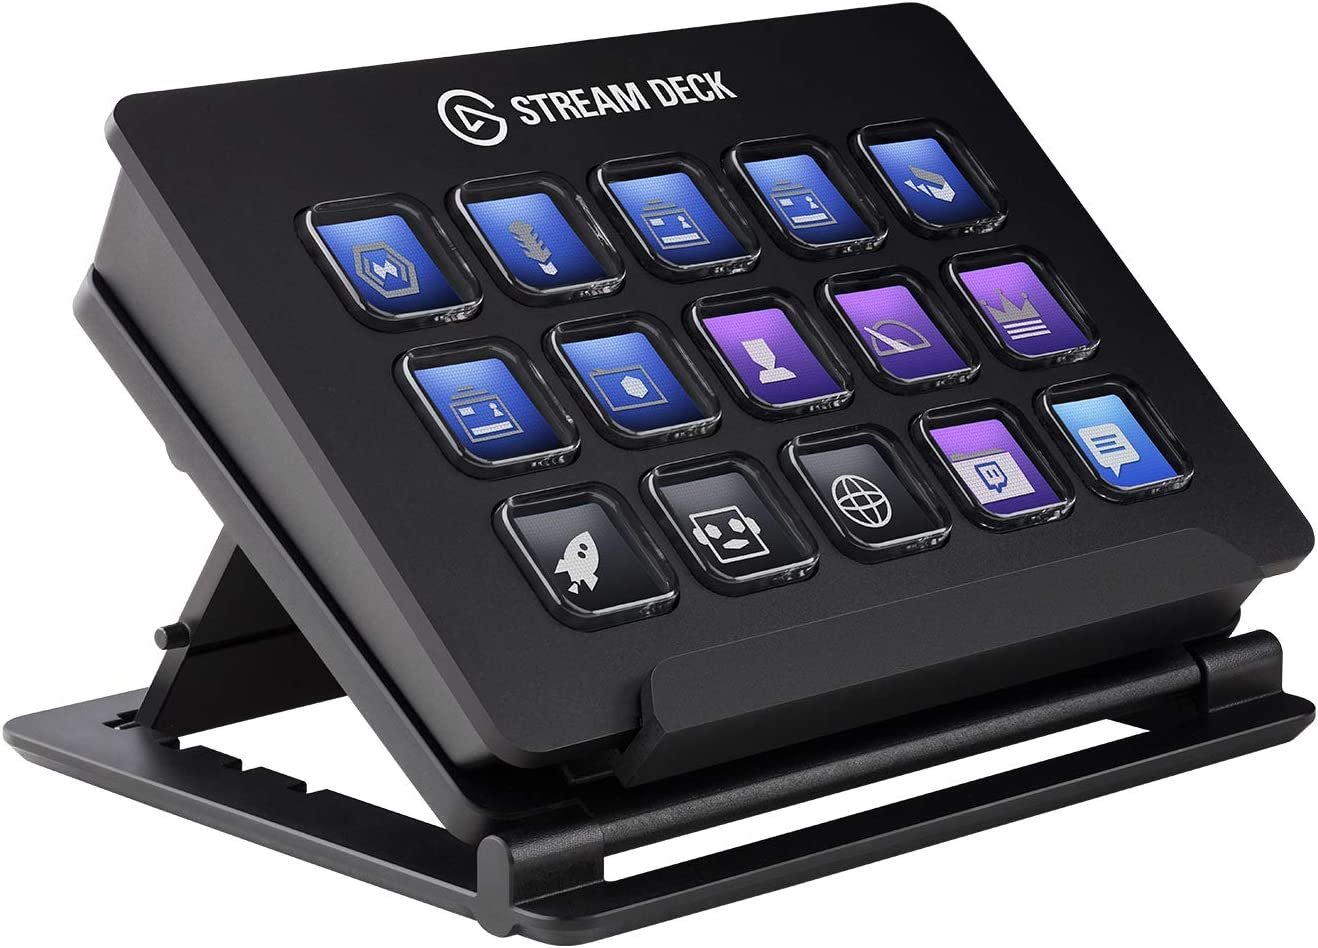 Amazon.com: Elgato Stream Deck - Live Content Creation Controller ...